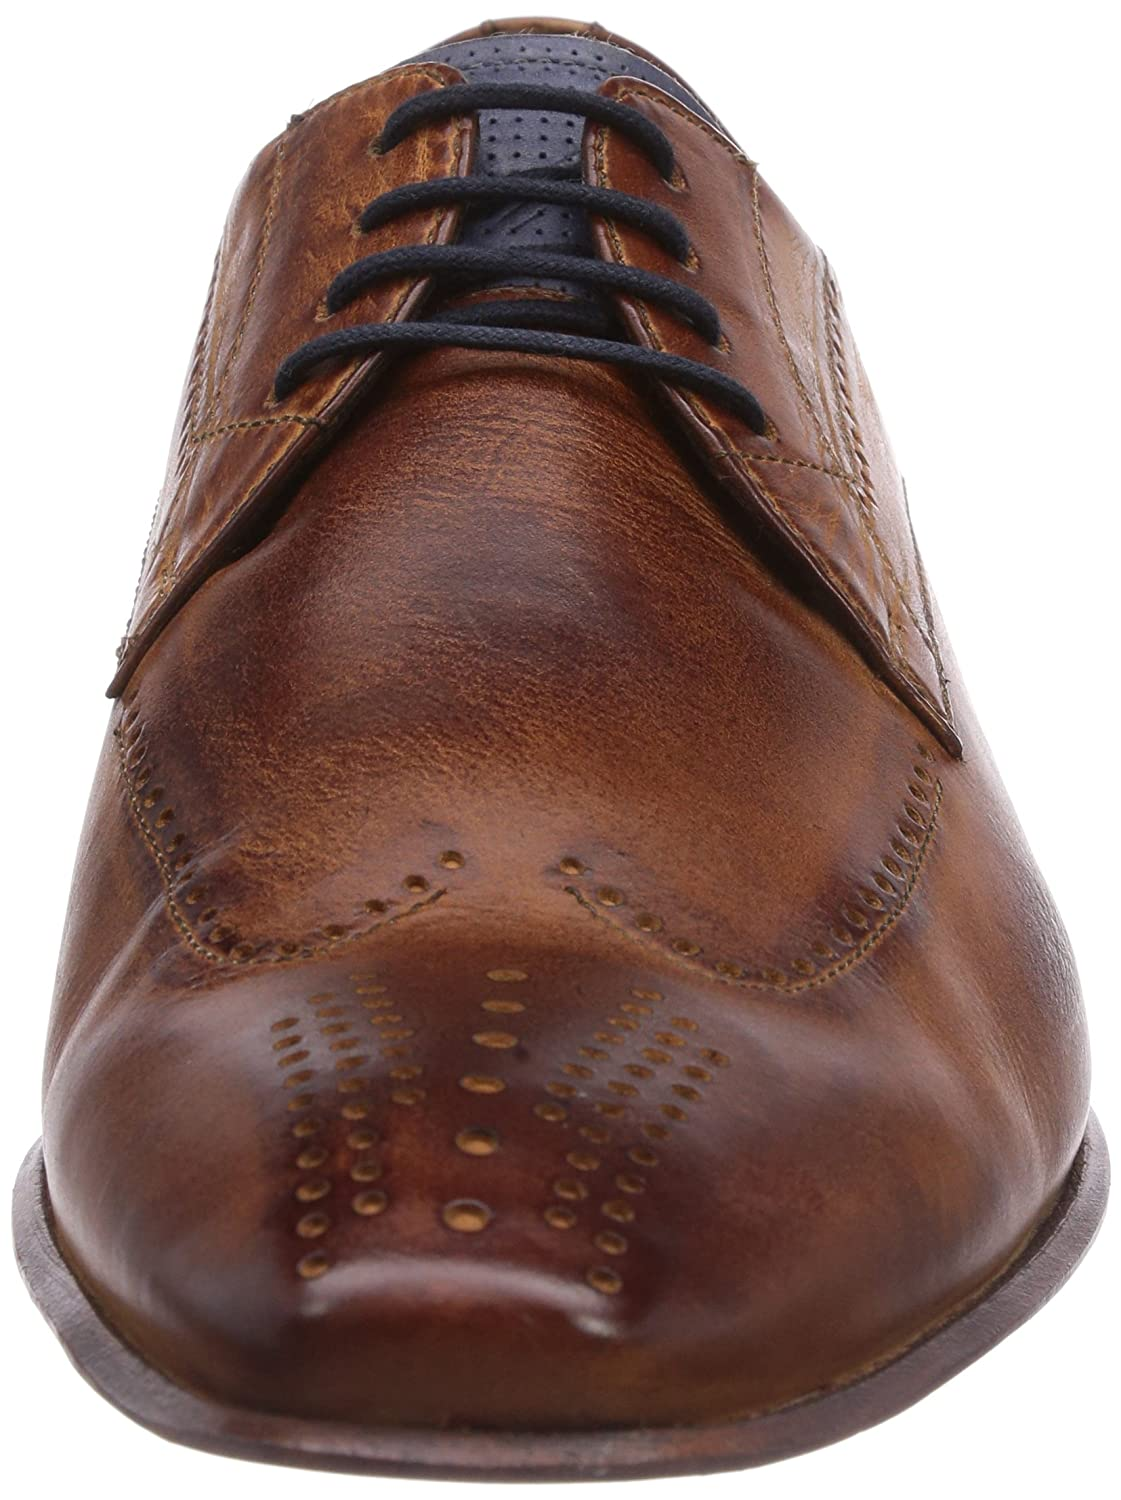 Hb10041w, Mens Brogue Lace-Up Half Shoe Daniel Hechter